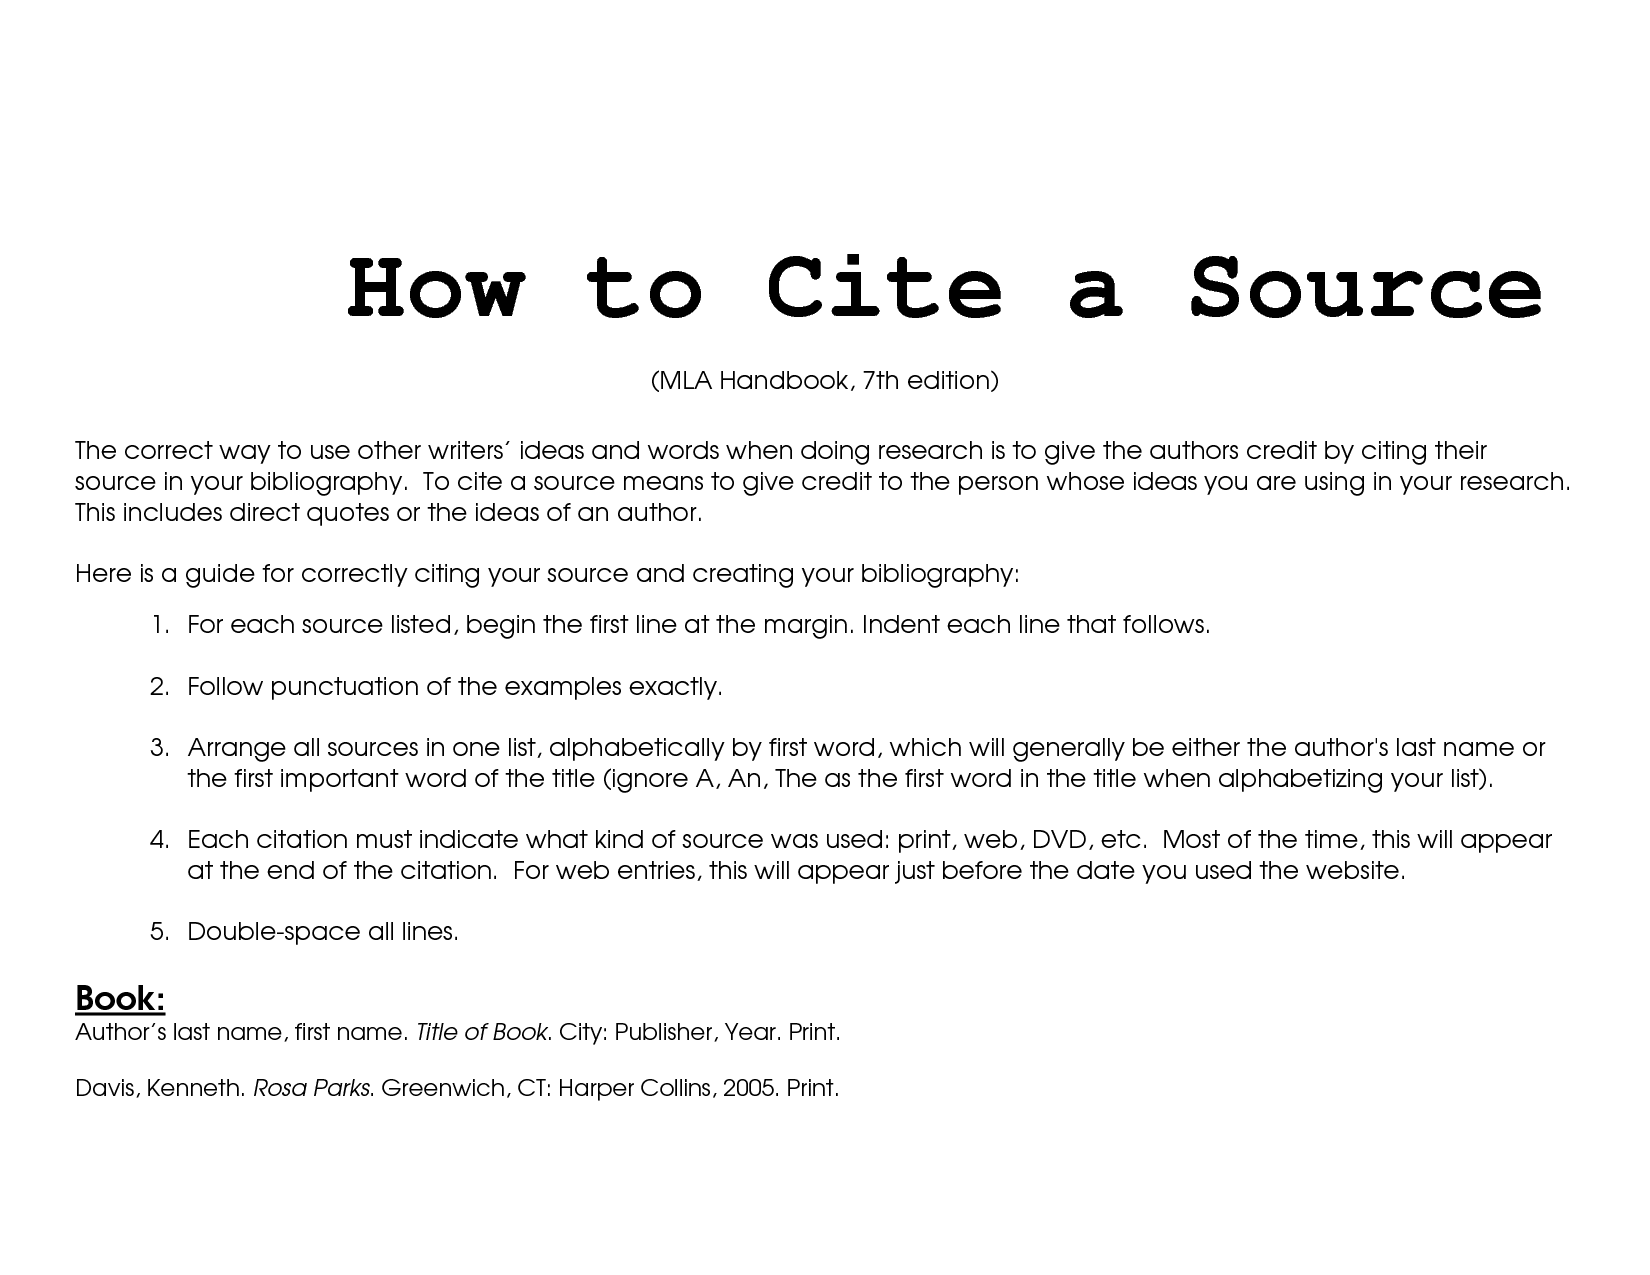 Citing sources in mla style enc1102libraryinstruction cite your sources mla retrieved from httpdocstocdocs132890878cite your sources mla ccuart